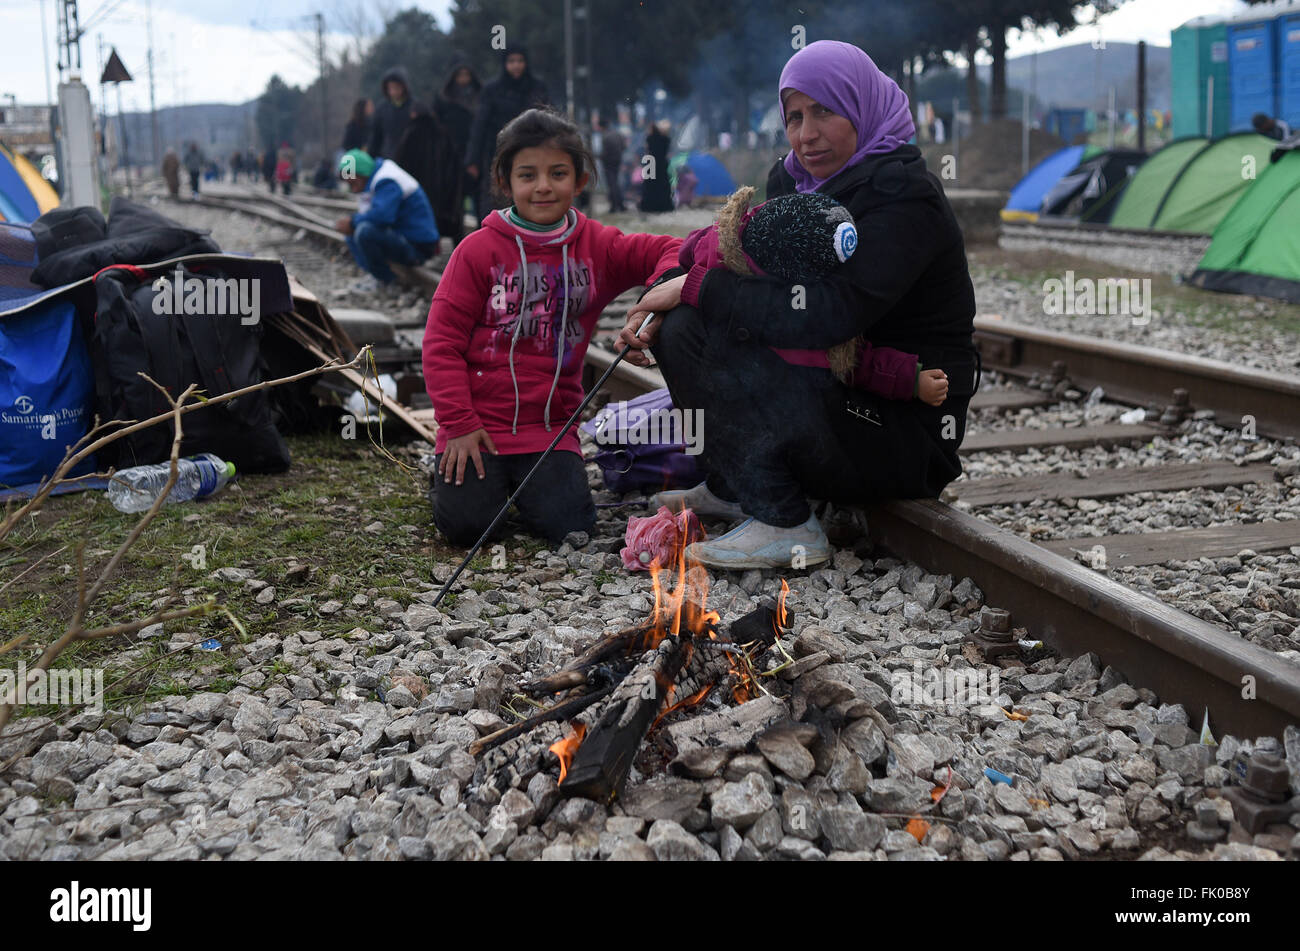 Idomeni, Greece. 04th Mar, 2016. Refugees in the refugee camp in Idomeni, northern Greece, on 04 March 2016, at - Stock Image